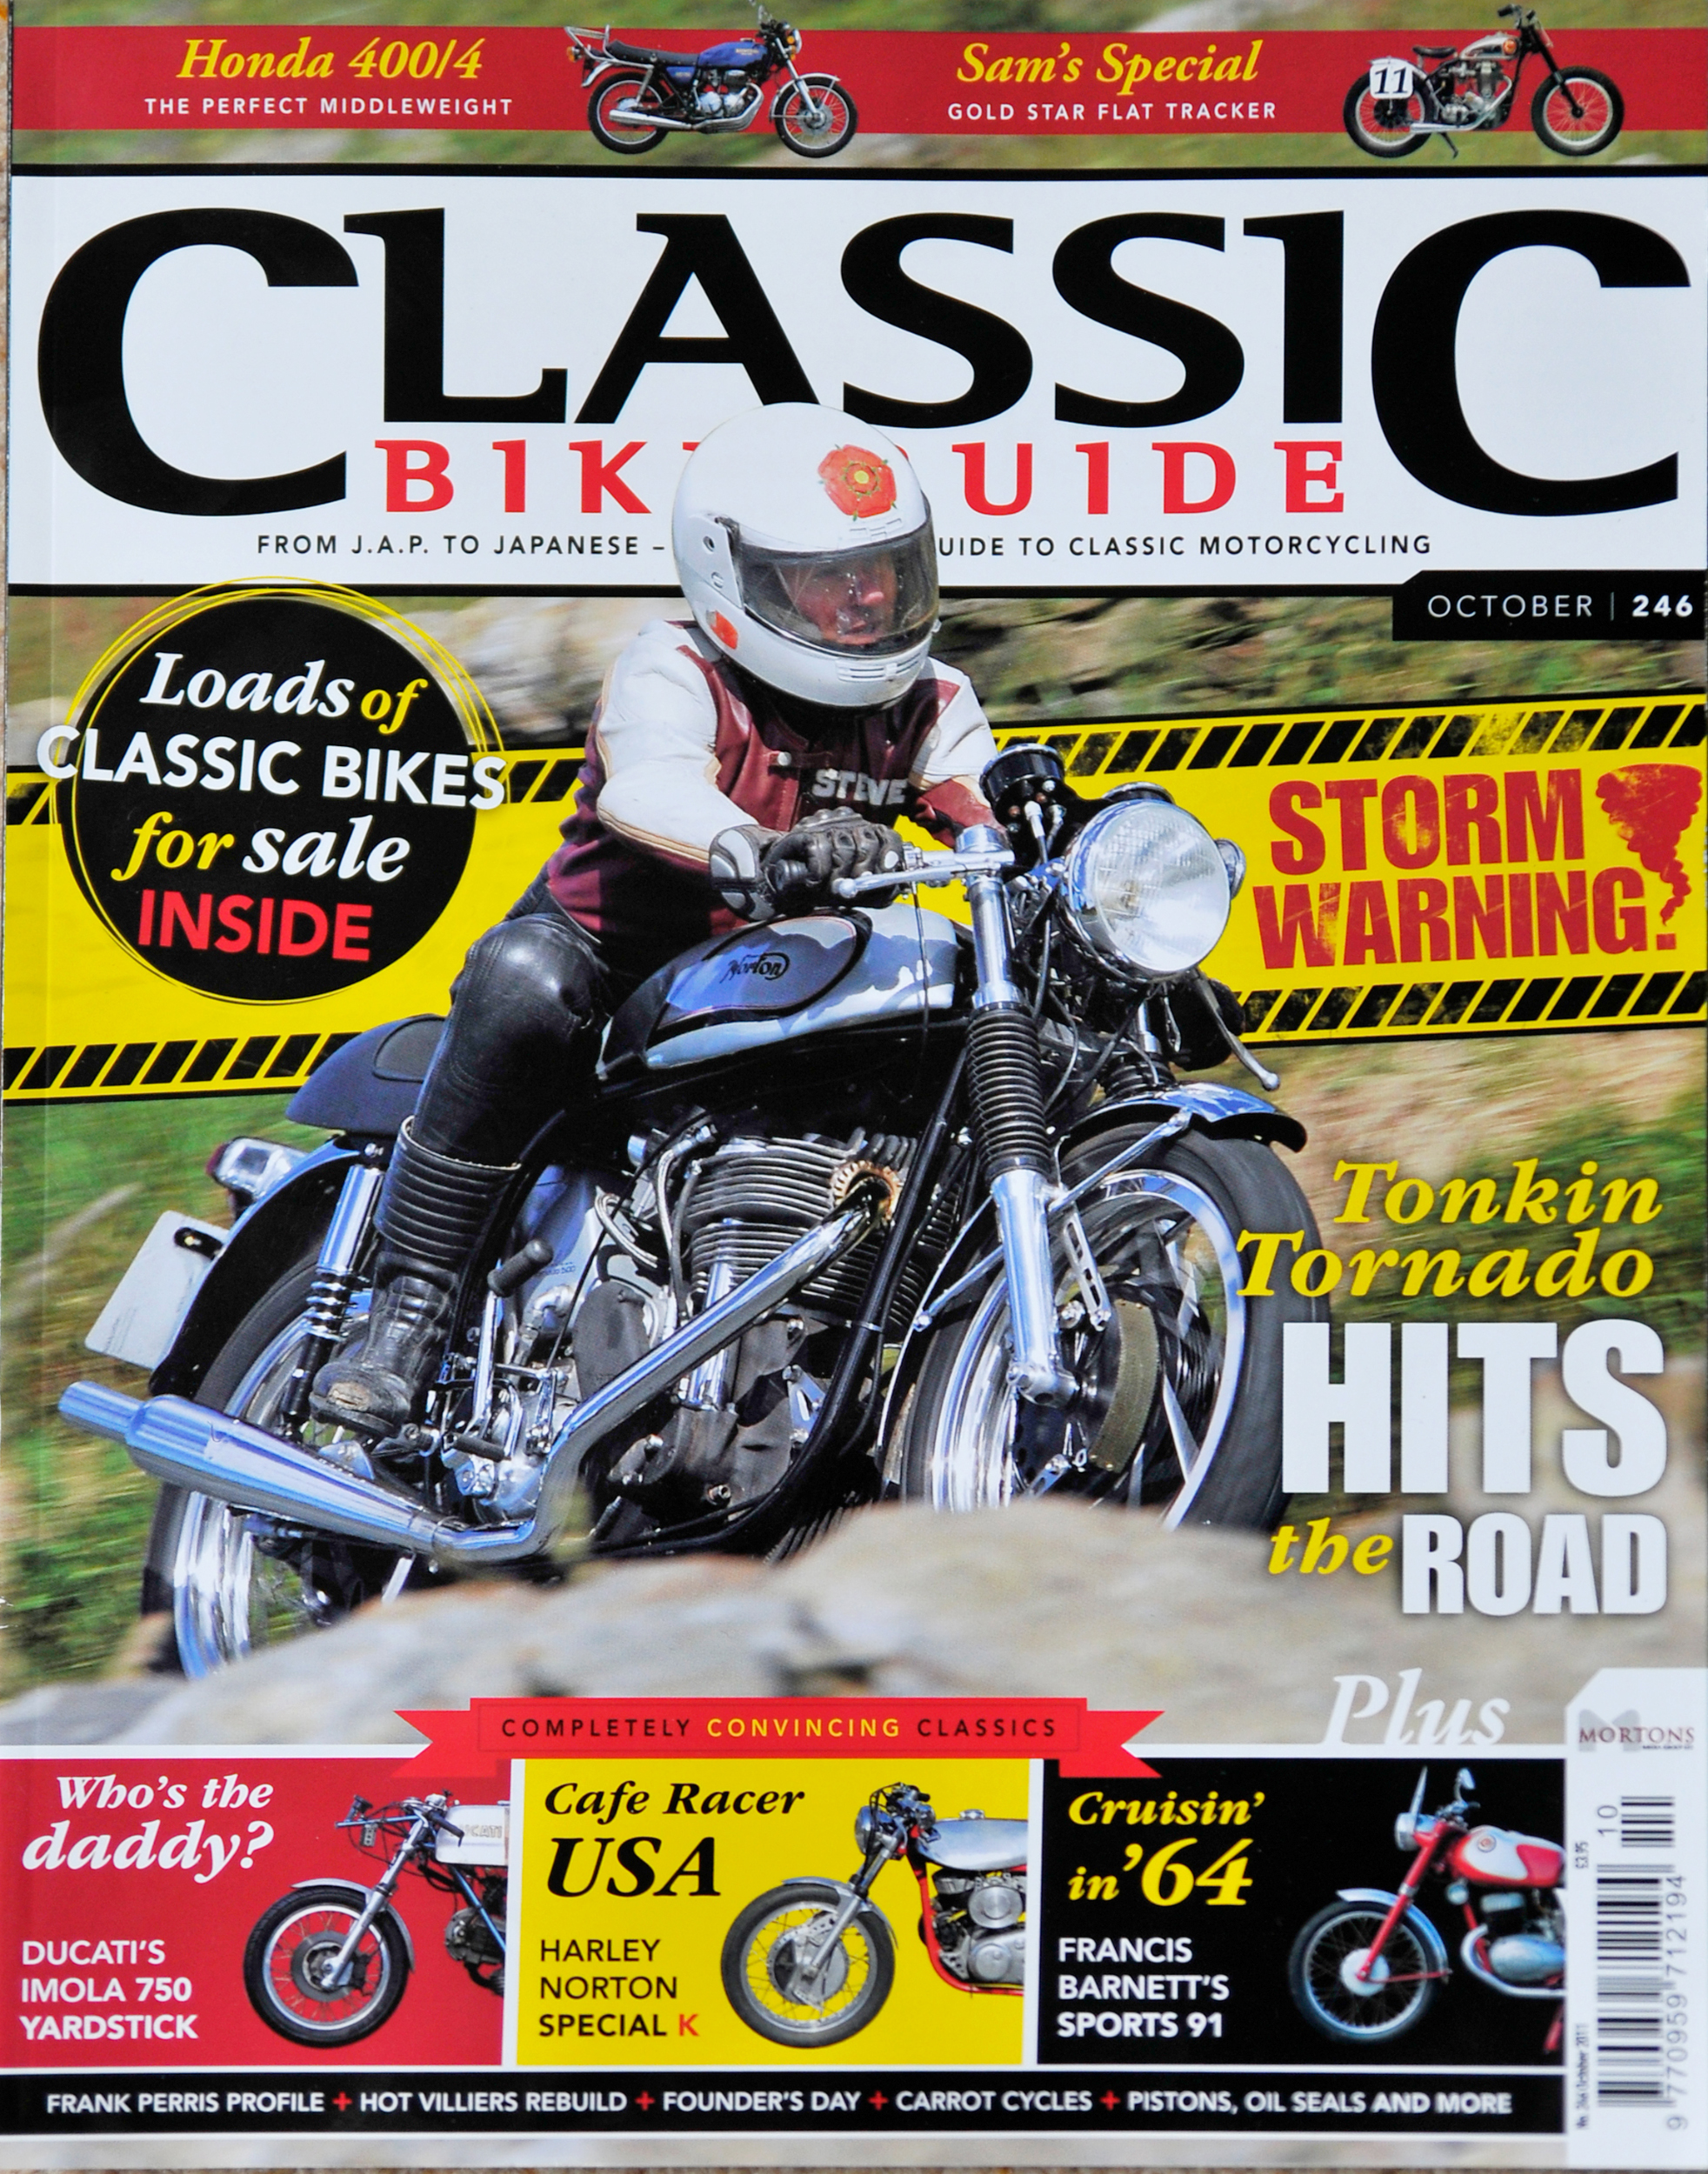 Classic Bike Guide OCT2012.jpg